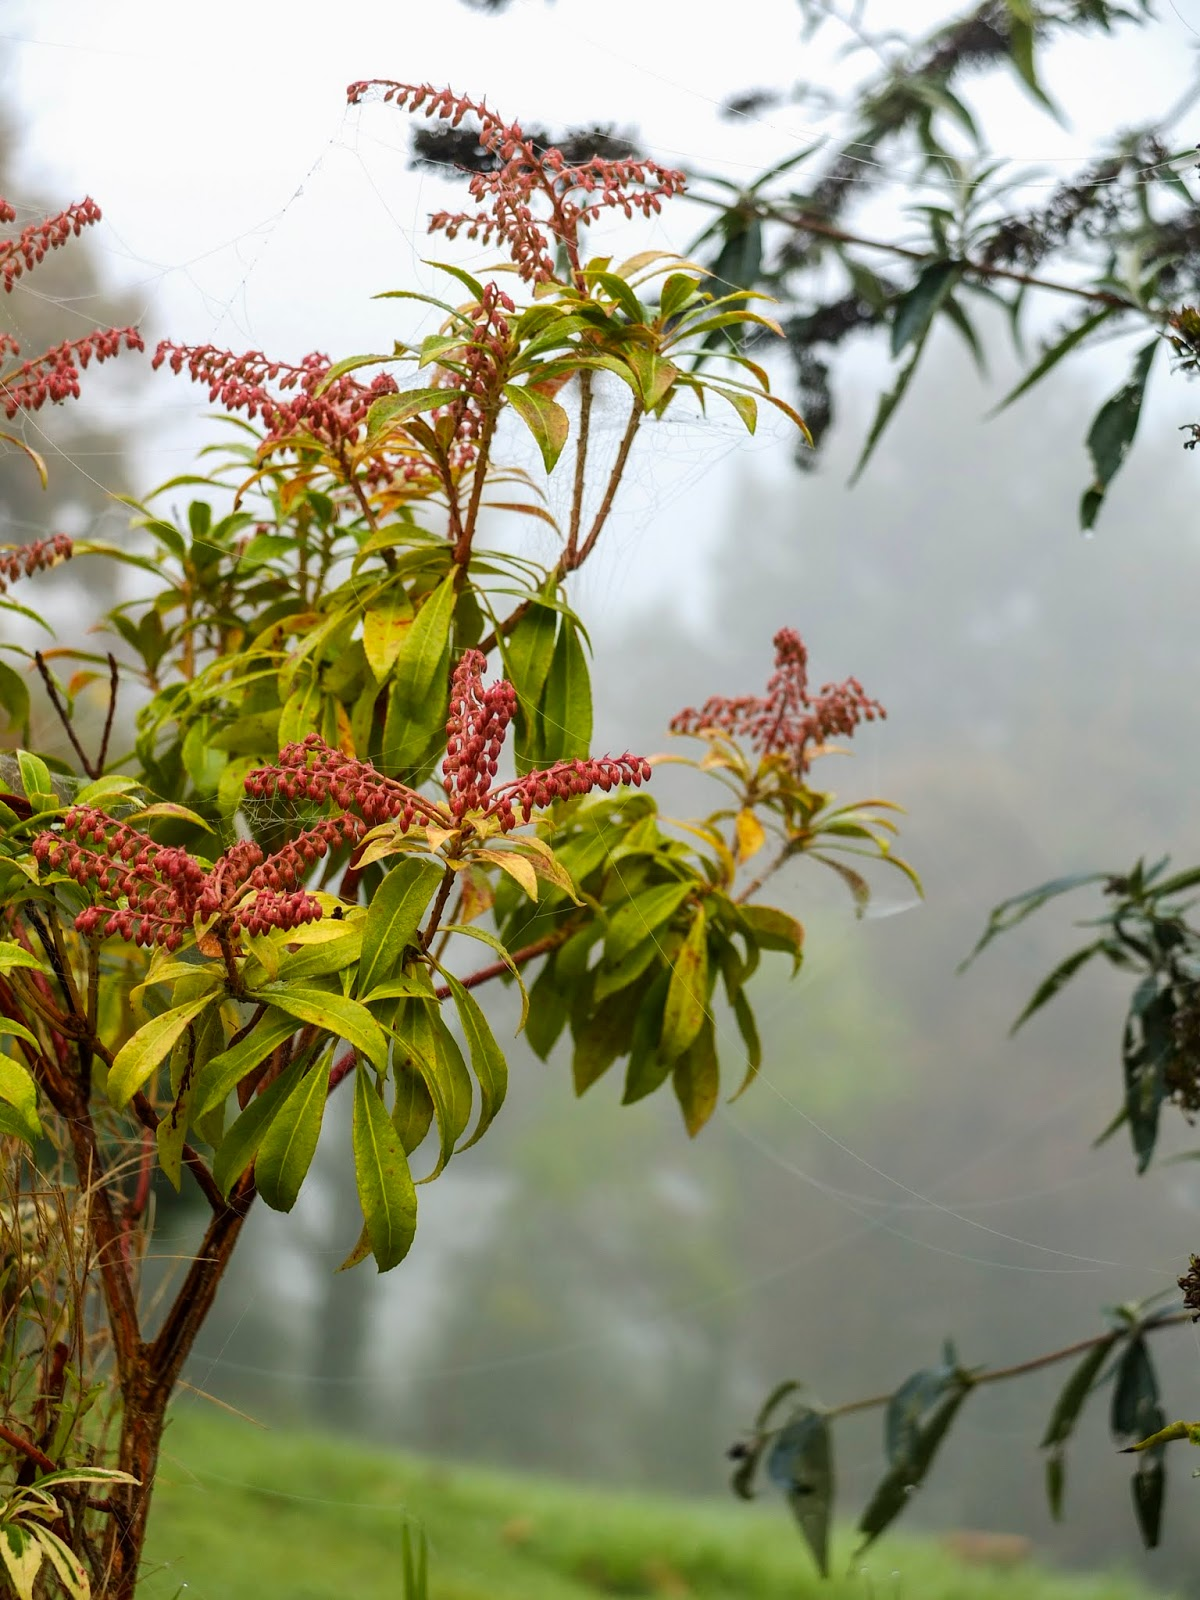 Plants wrapped in spider webs on a misty autumnal day.